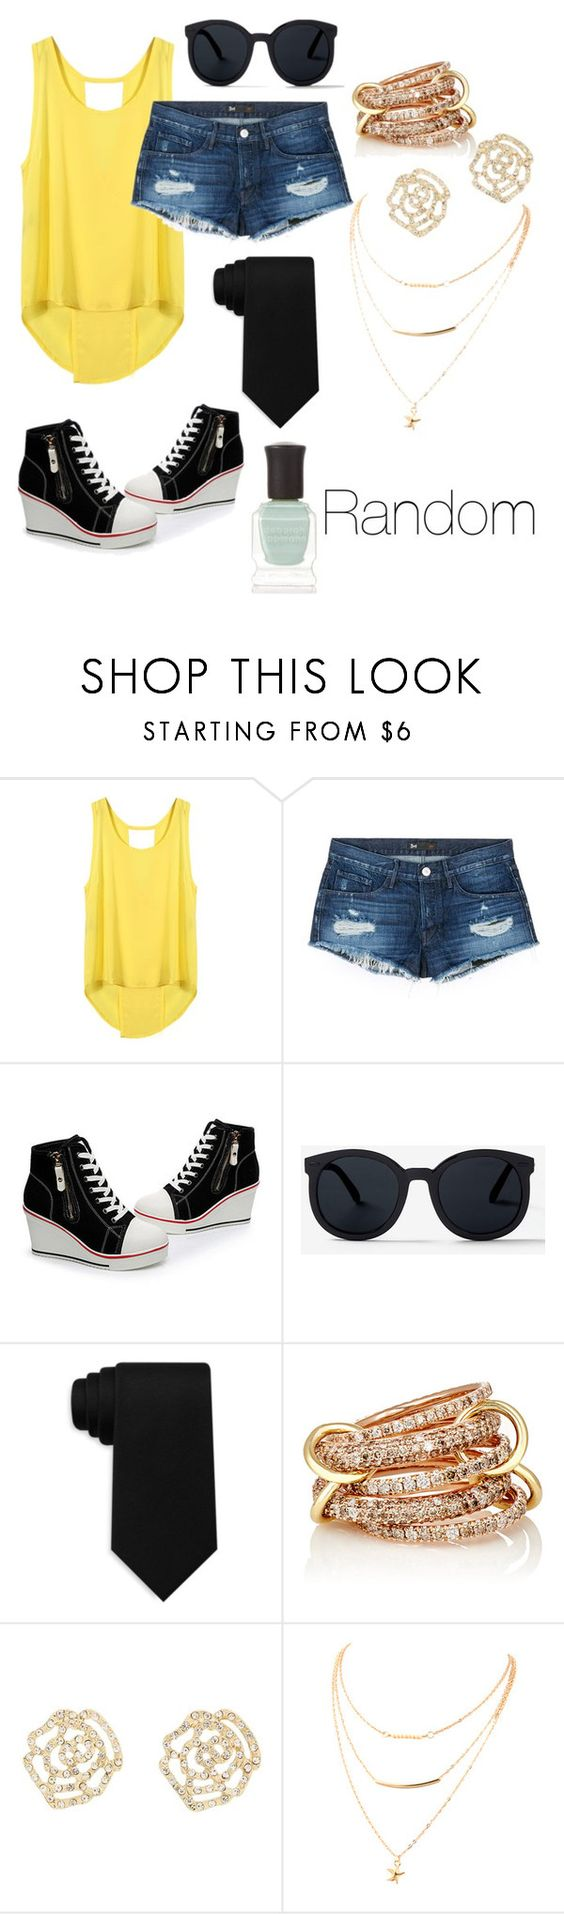 """""""Random 😝"""" by hopelessromance69 ❤ liked on Polyvore featuring 3x1, Tommy Hilfiger, SPINELLI KILCOLLIN, Charlotte Russe and Deborah Lippmann"""